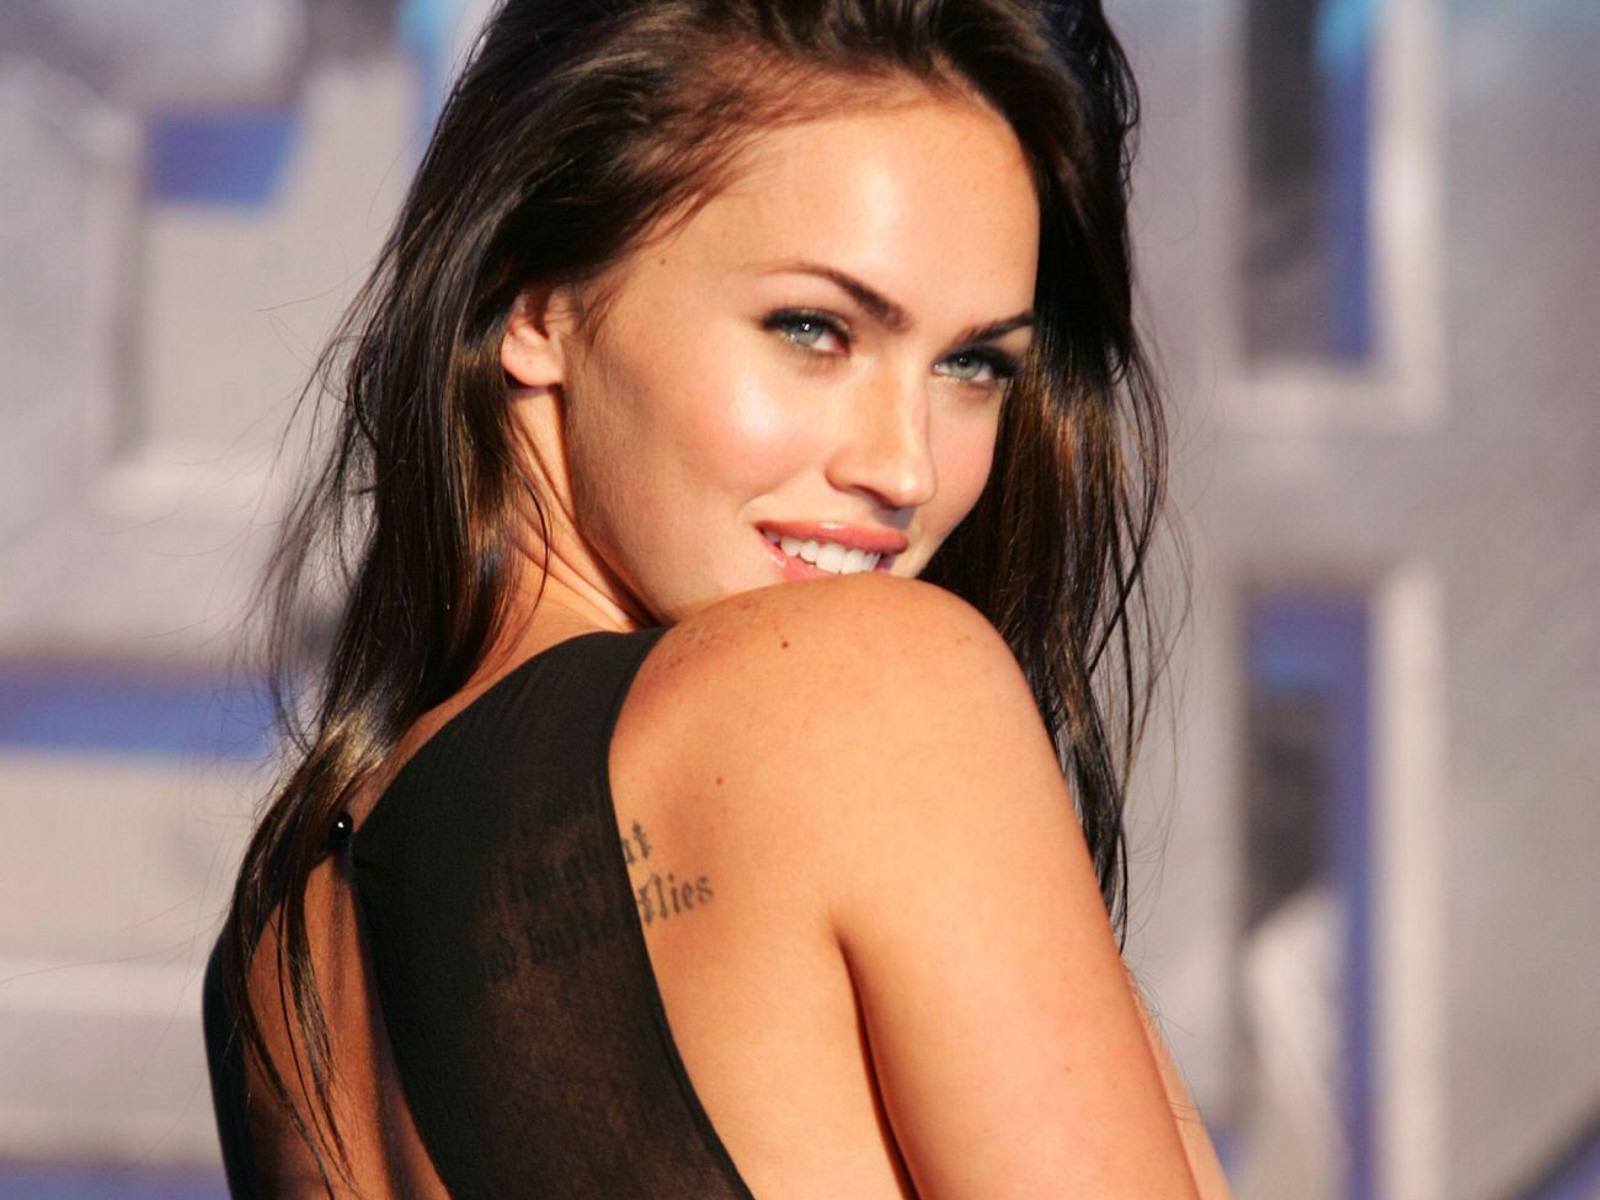 All Types Free Wallpapers: Megan Fox, Hot, Wallpapers, in Bikini, in Bra, Beautiful, Girls, Models